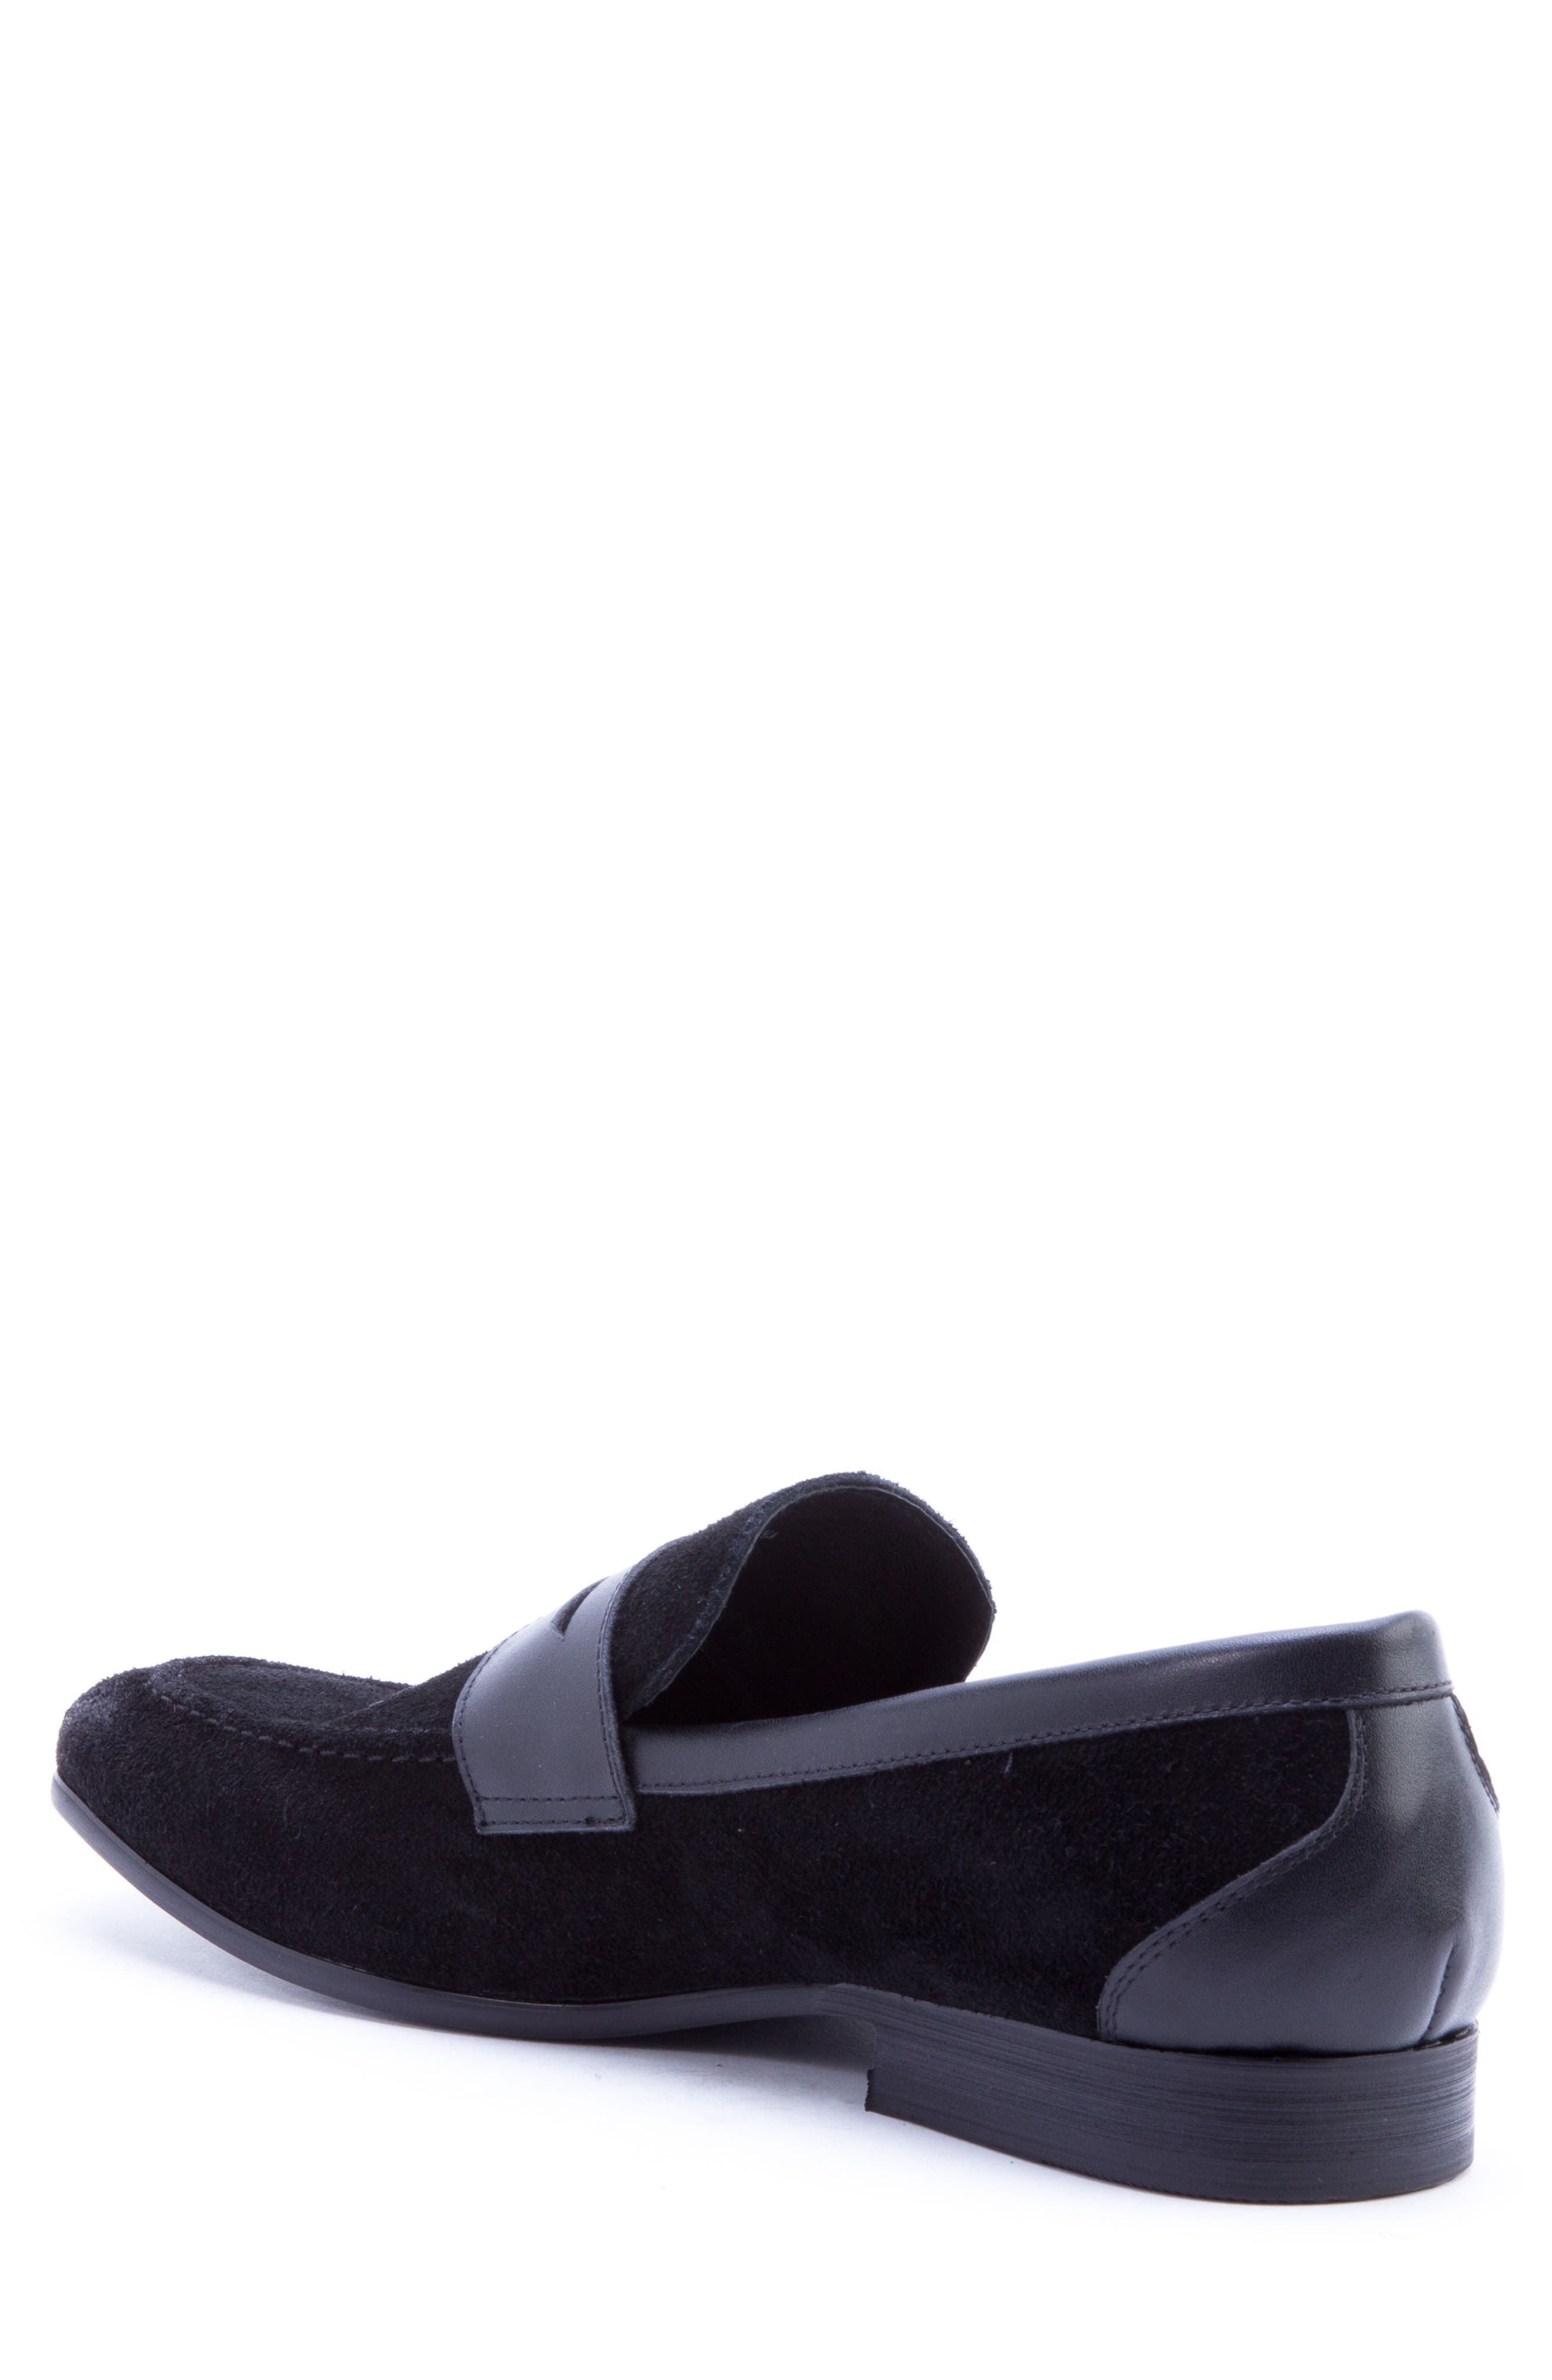 Siena Penny Loafer,                             Alternate thumbnail 2, color,                             Black Suede/ Leather